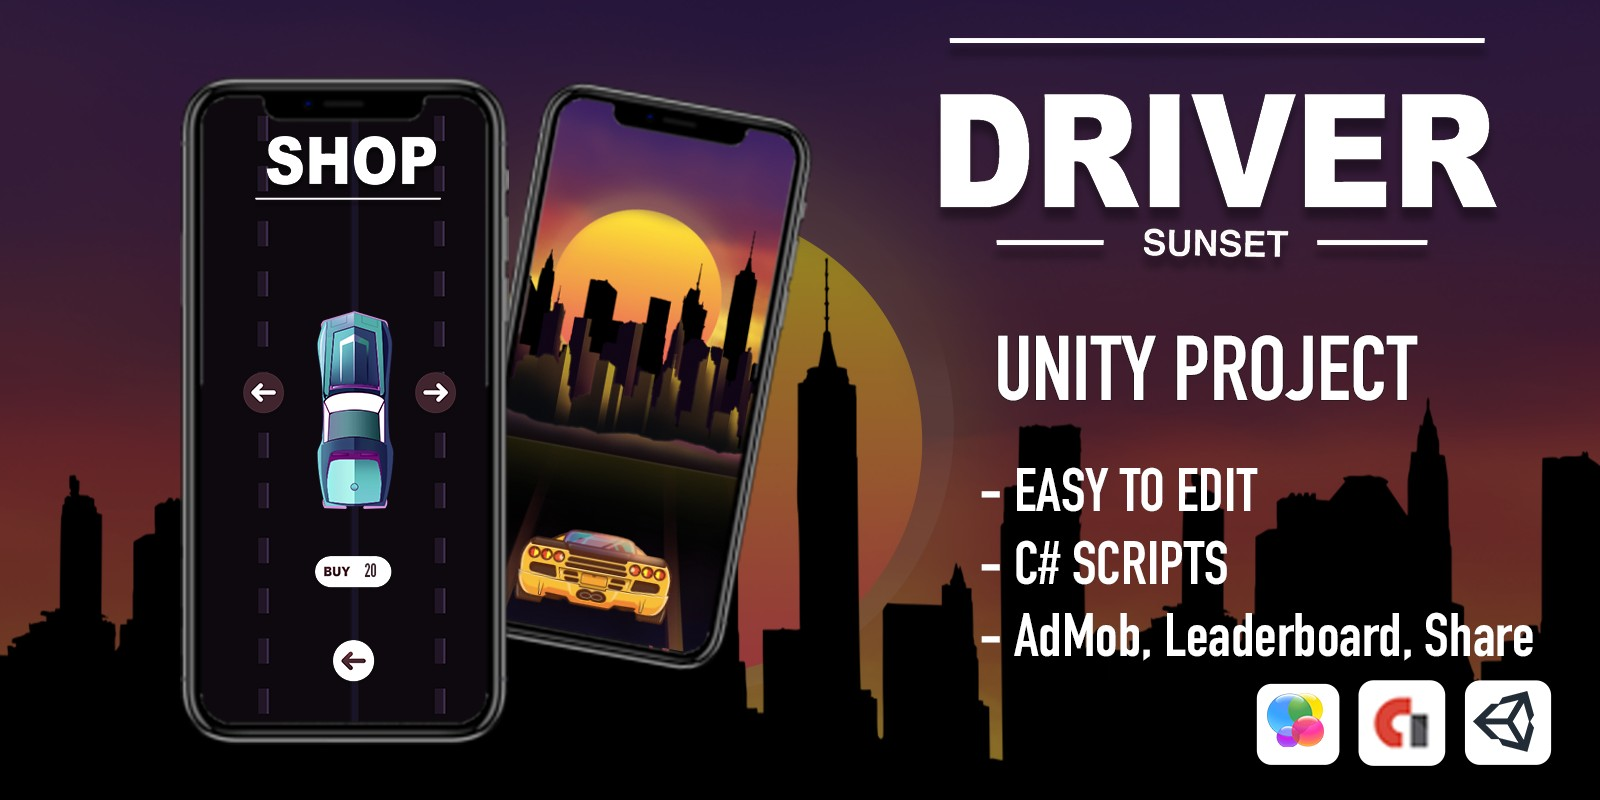 Sunset Driver - Unity Project